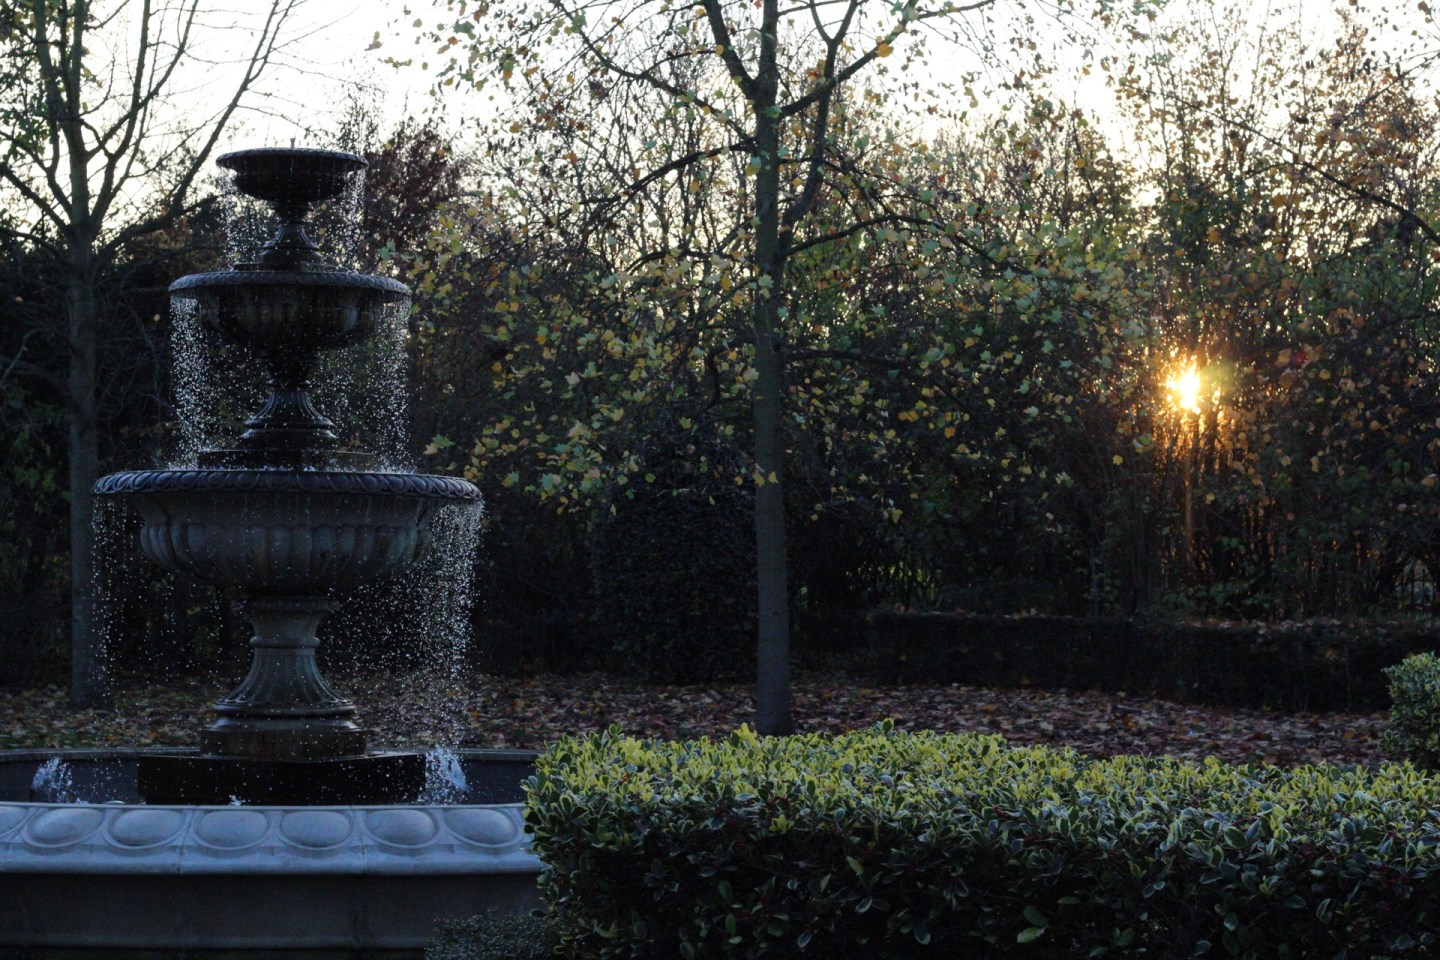 Fountain in front of sunset peeking through trees in London park